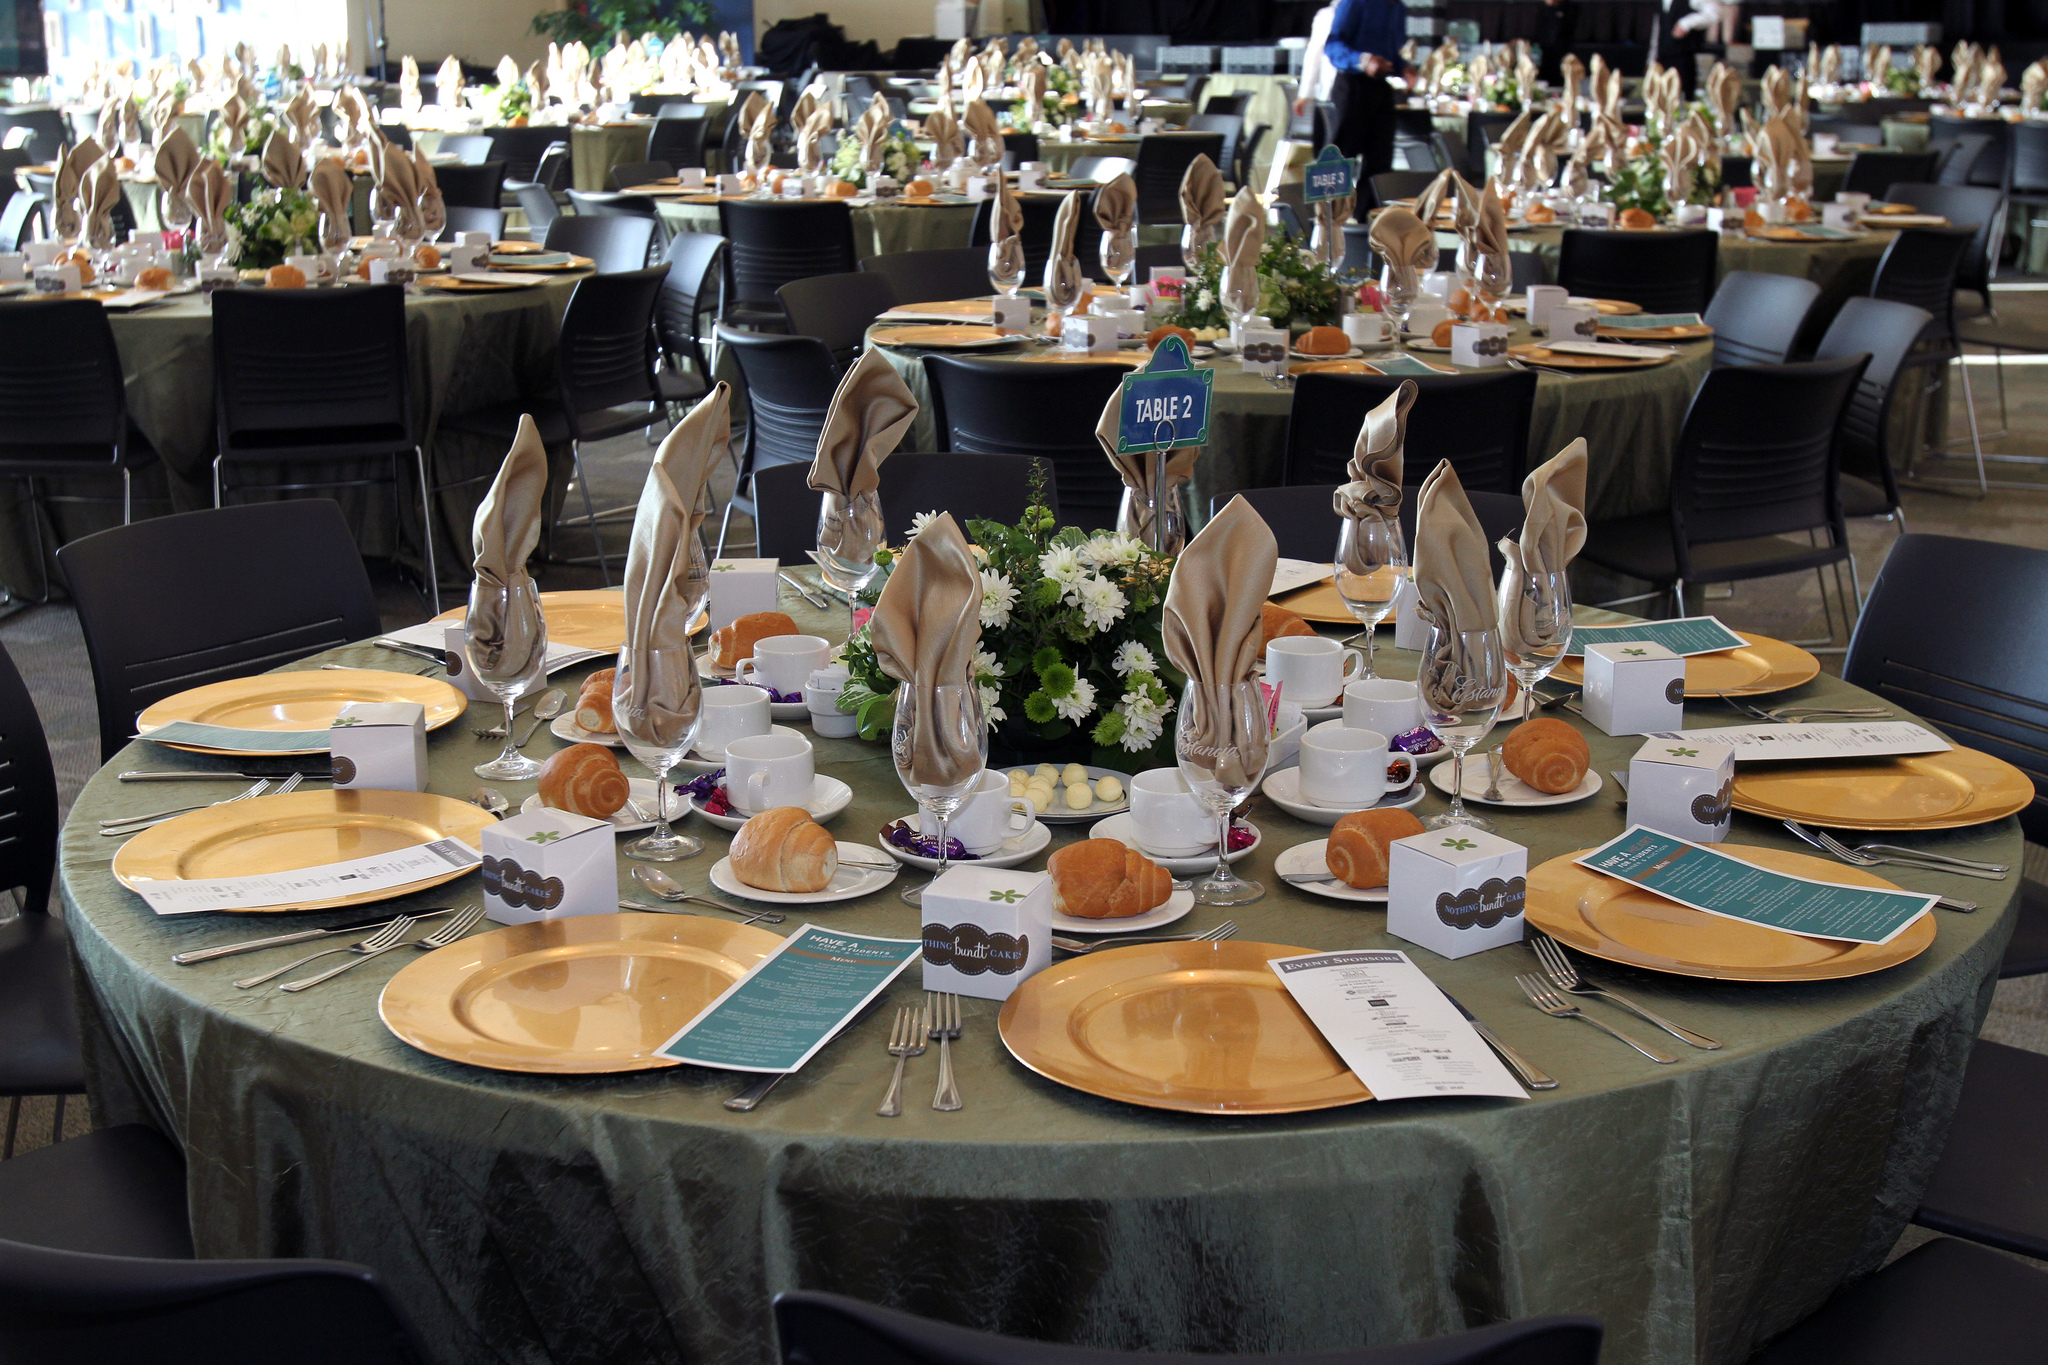 Table setting at special event